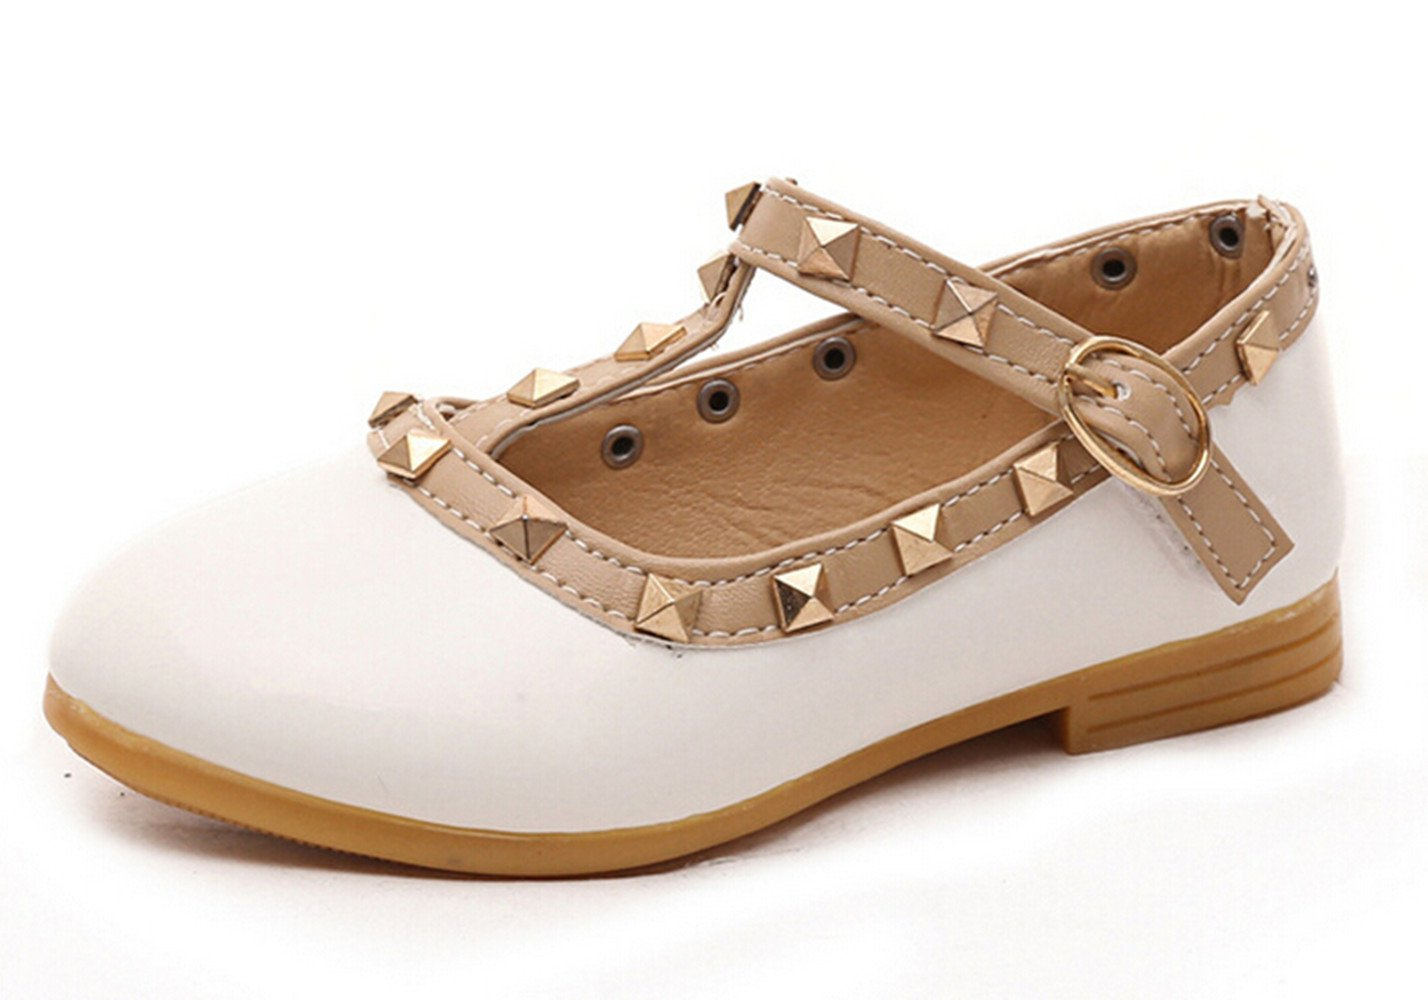 Bumud Girls Toddler T-Strap Flat Shoes Little Kids Mary Jane Studded Shoes (8 M US Toddler, White)